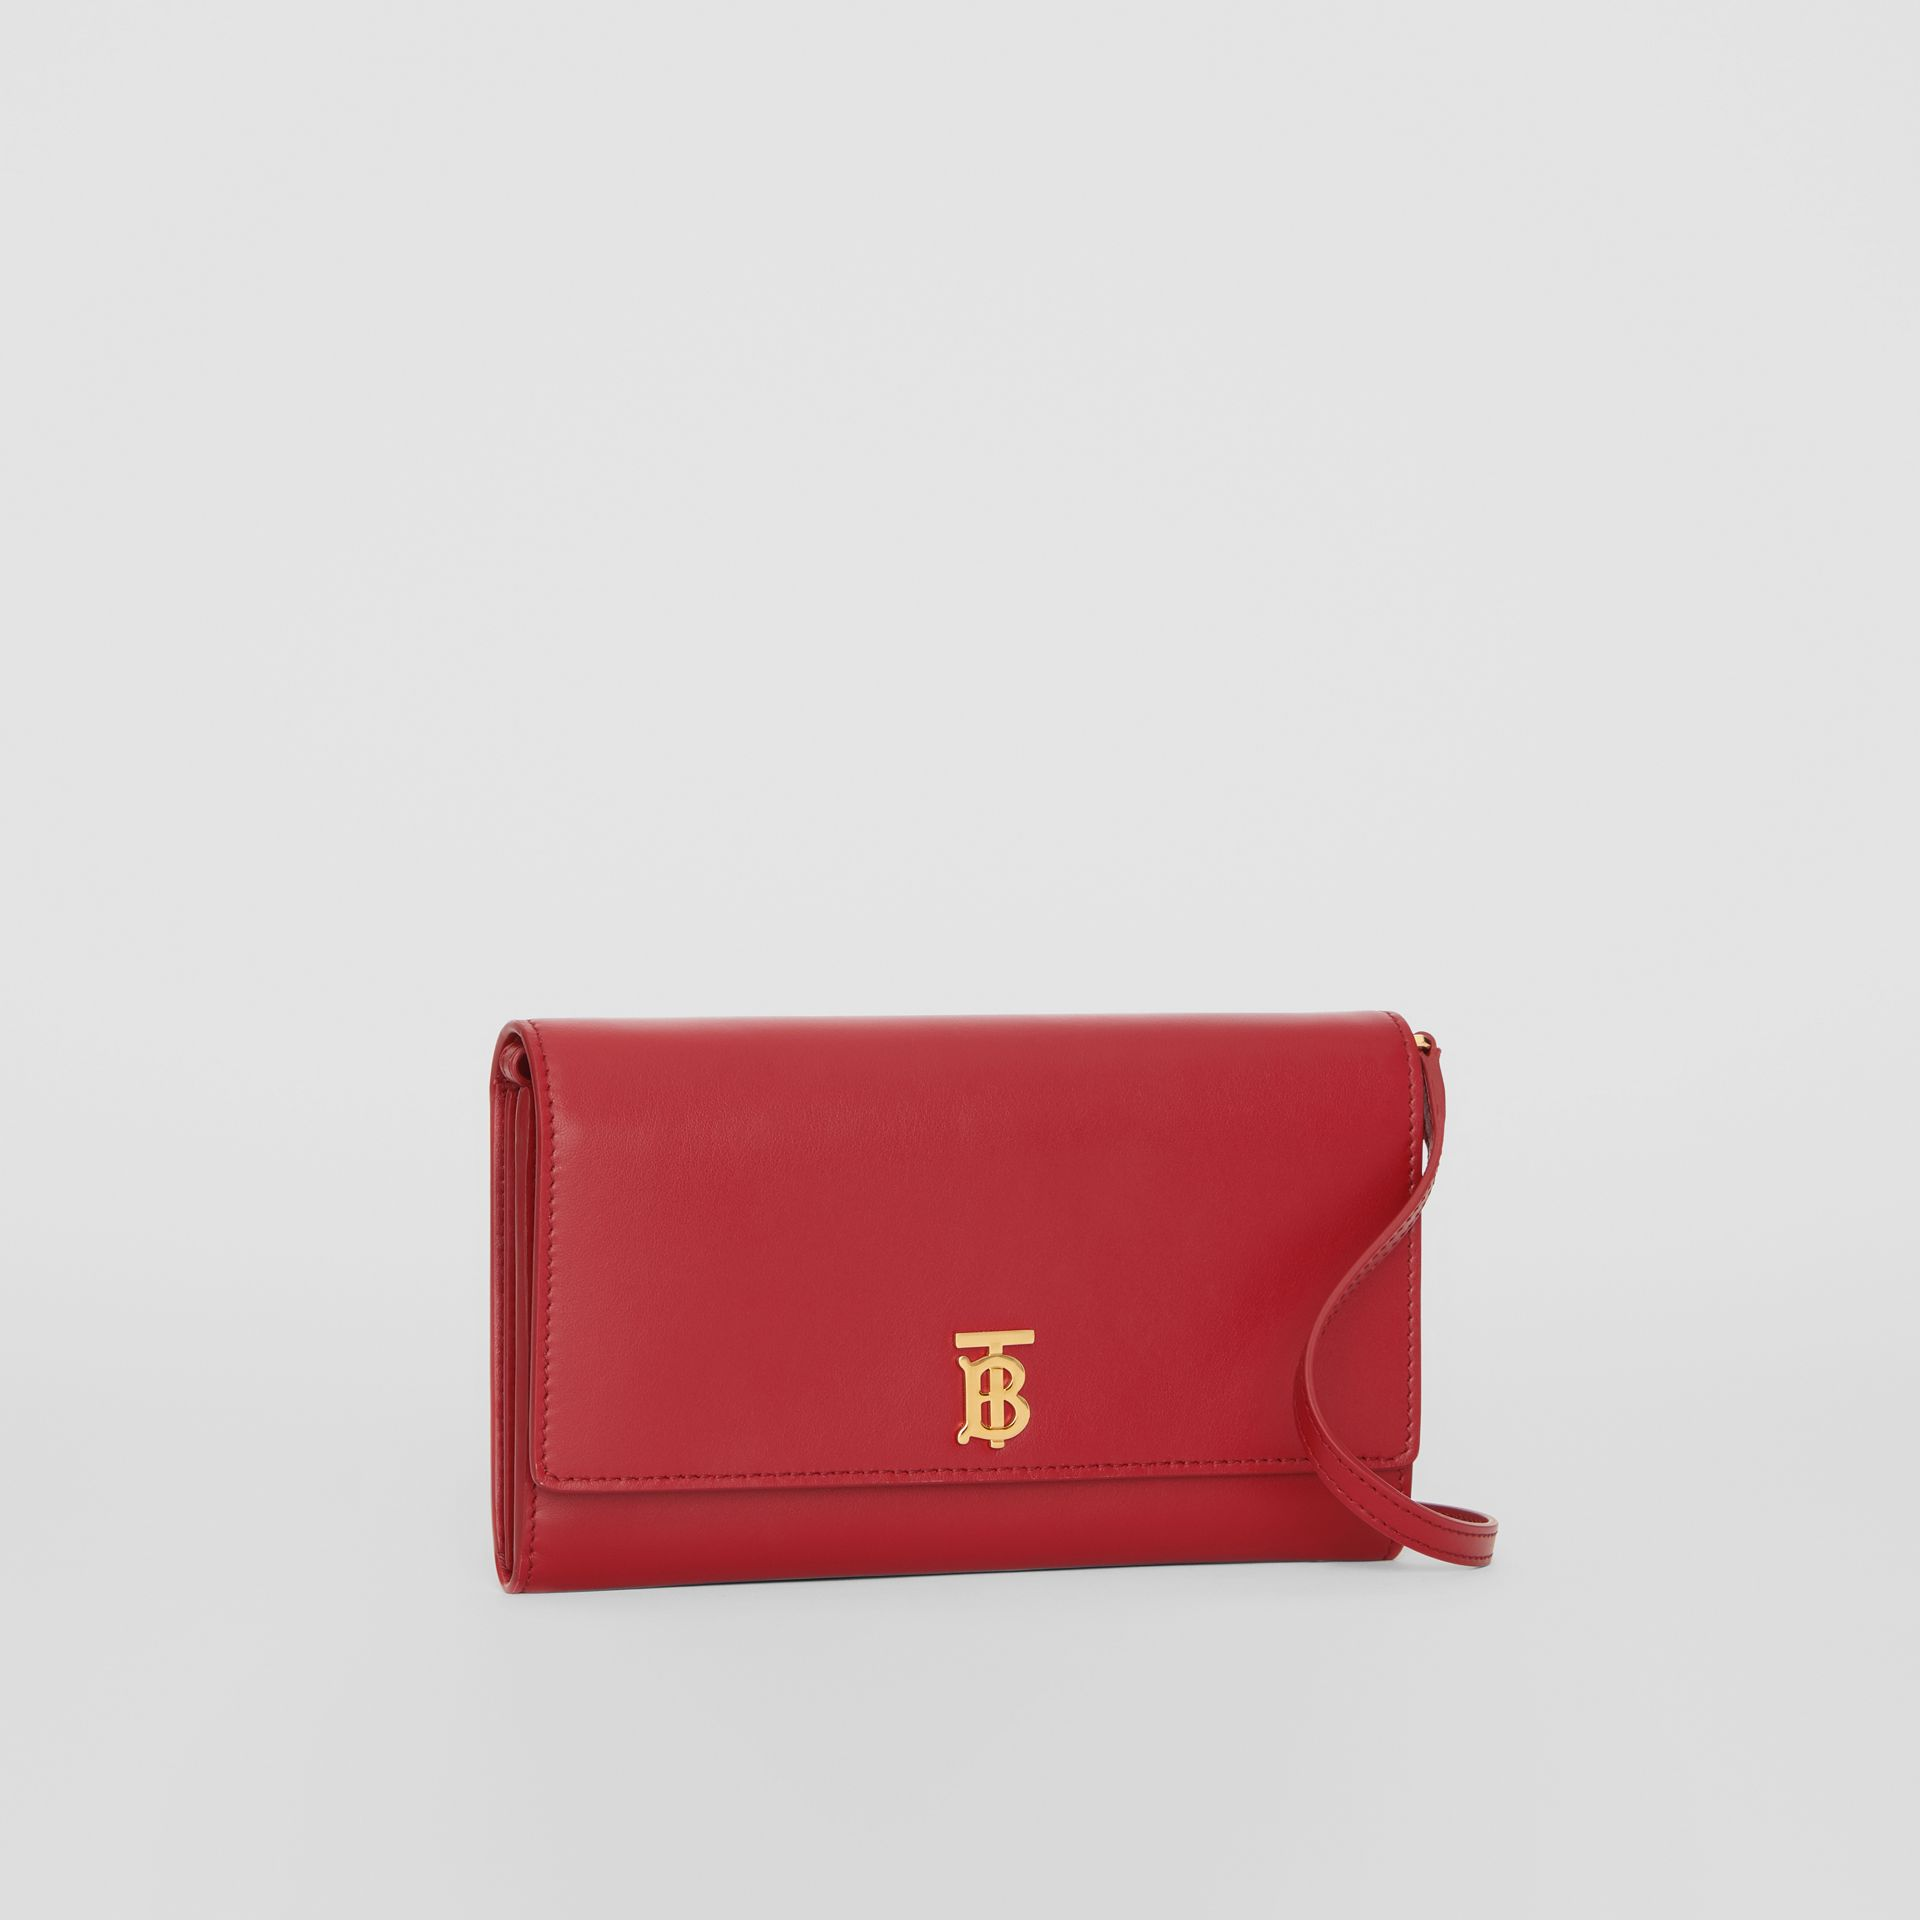 Monogram Motif Leather Wallet with Detachable Strap in Crimson - Women | Burberry - gallery image 6